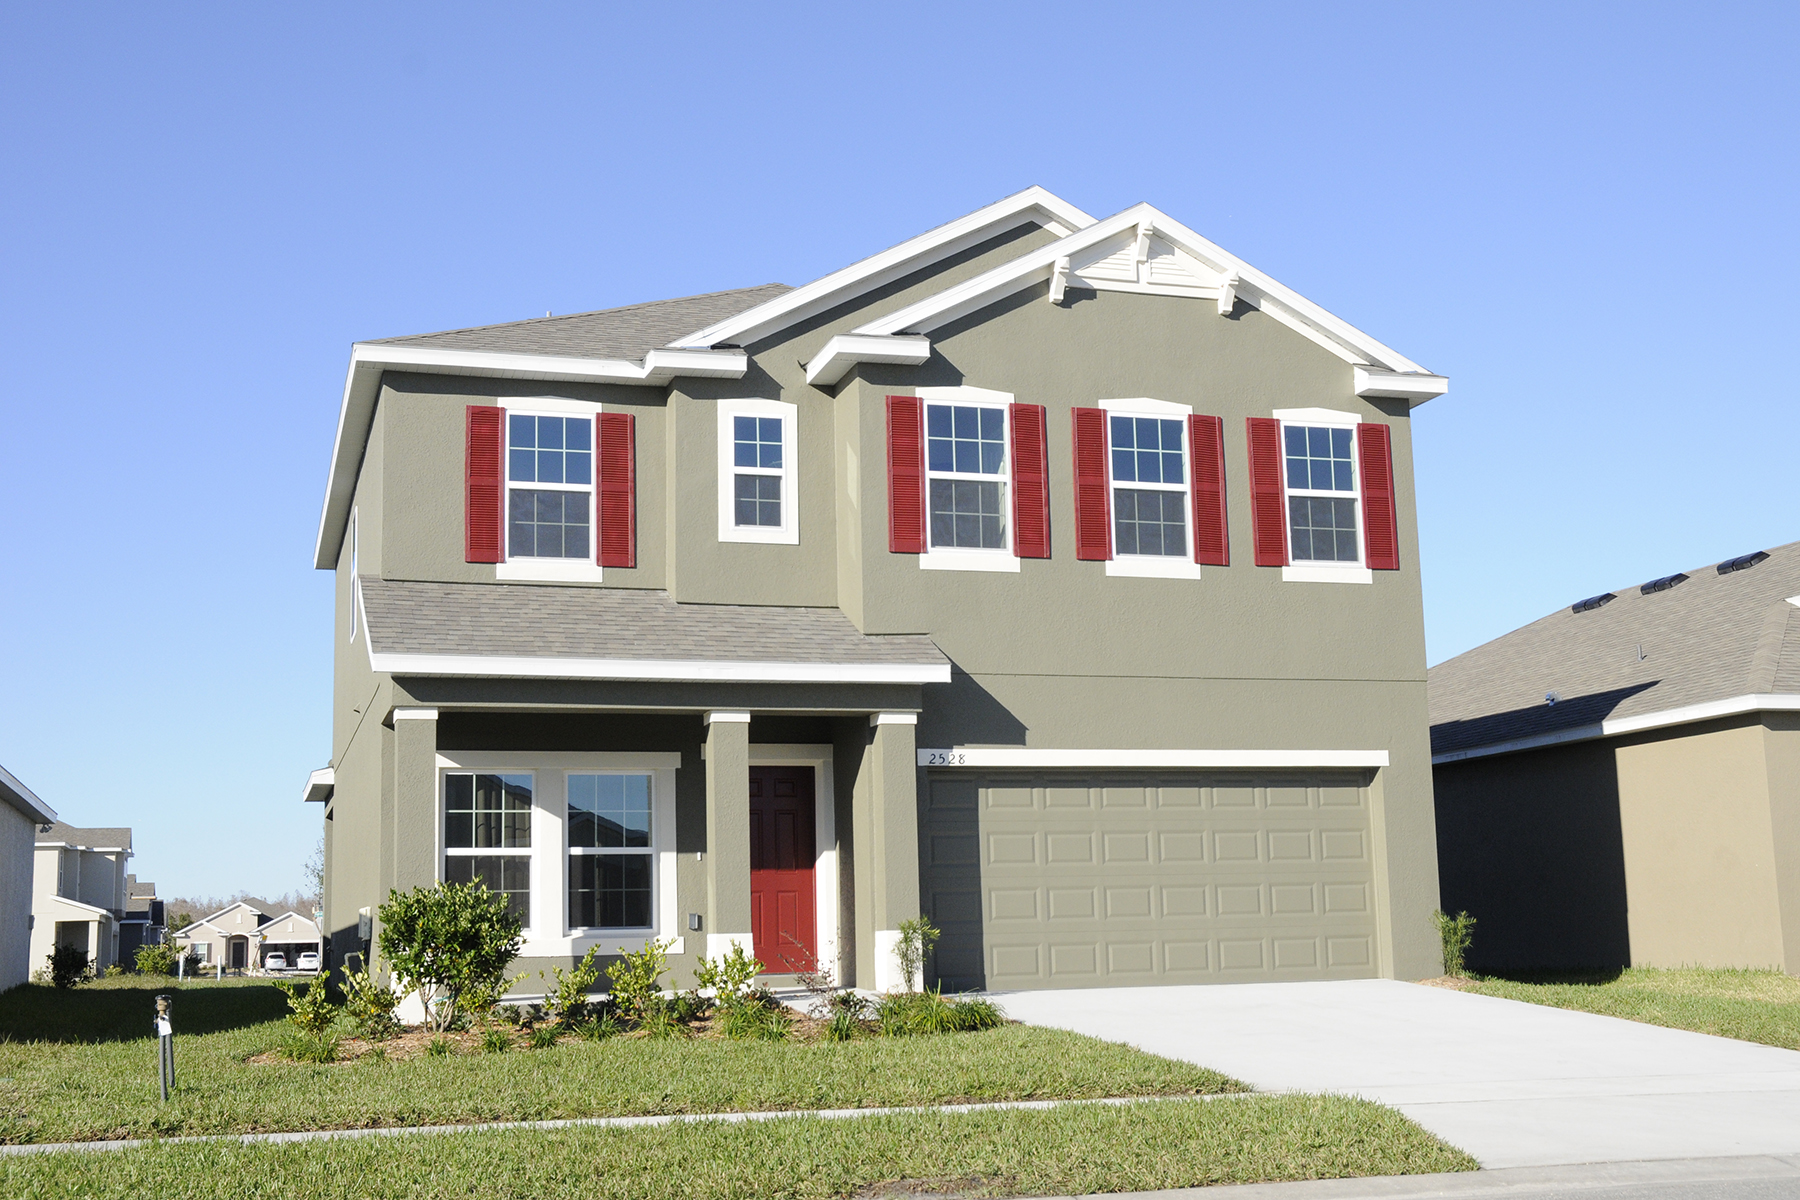 Single Family Home for Sale at ORLANDO - KISSIMMEE 2528 Isabela Terr Kissimmee, Florida 34743 United States